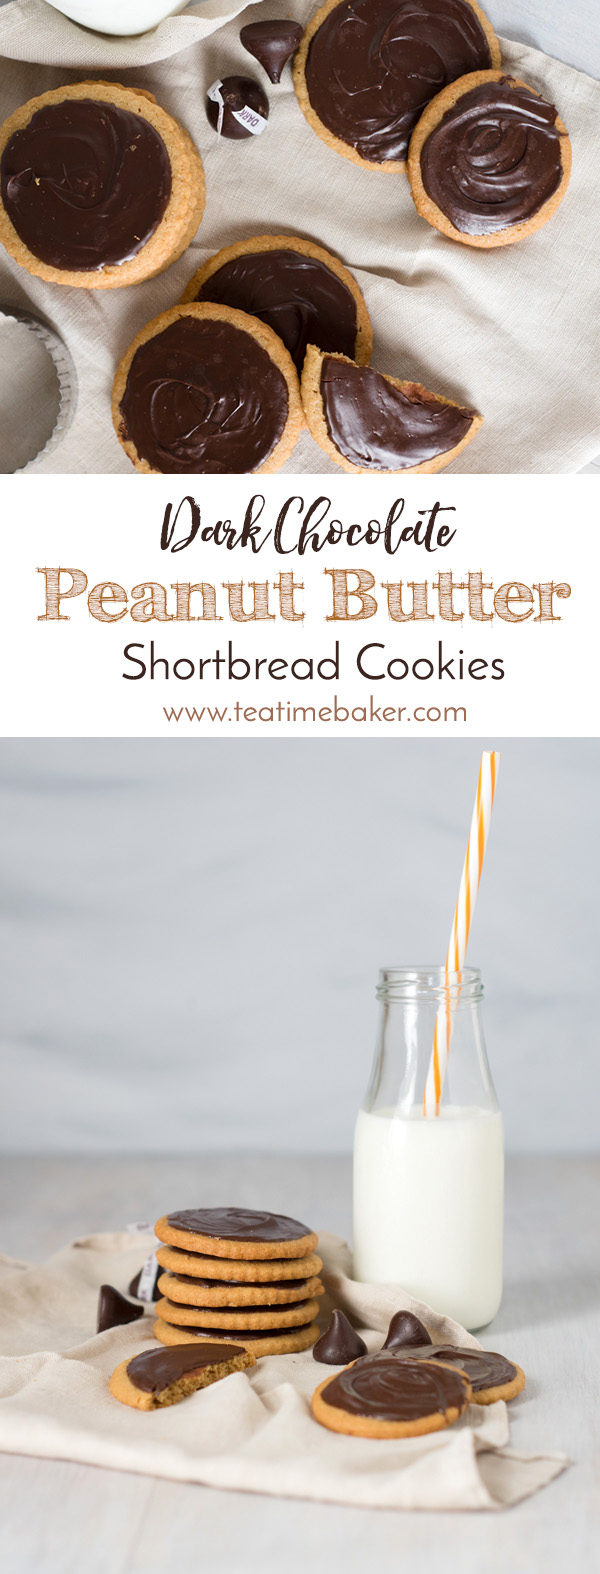 A sophisticated take on the popular peanut butter blossom cookies. Each bite contains both the peanut butter base and dark chocolate topping in these Dark Chocolate Peanut Butter Shortbread Cookies | Peanut Butter Cookie Recipe | The Teatime Baker | Holiday Cookies | #peanutbuttercookies